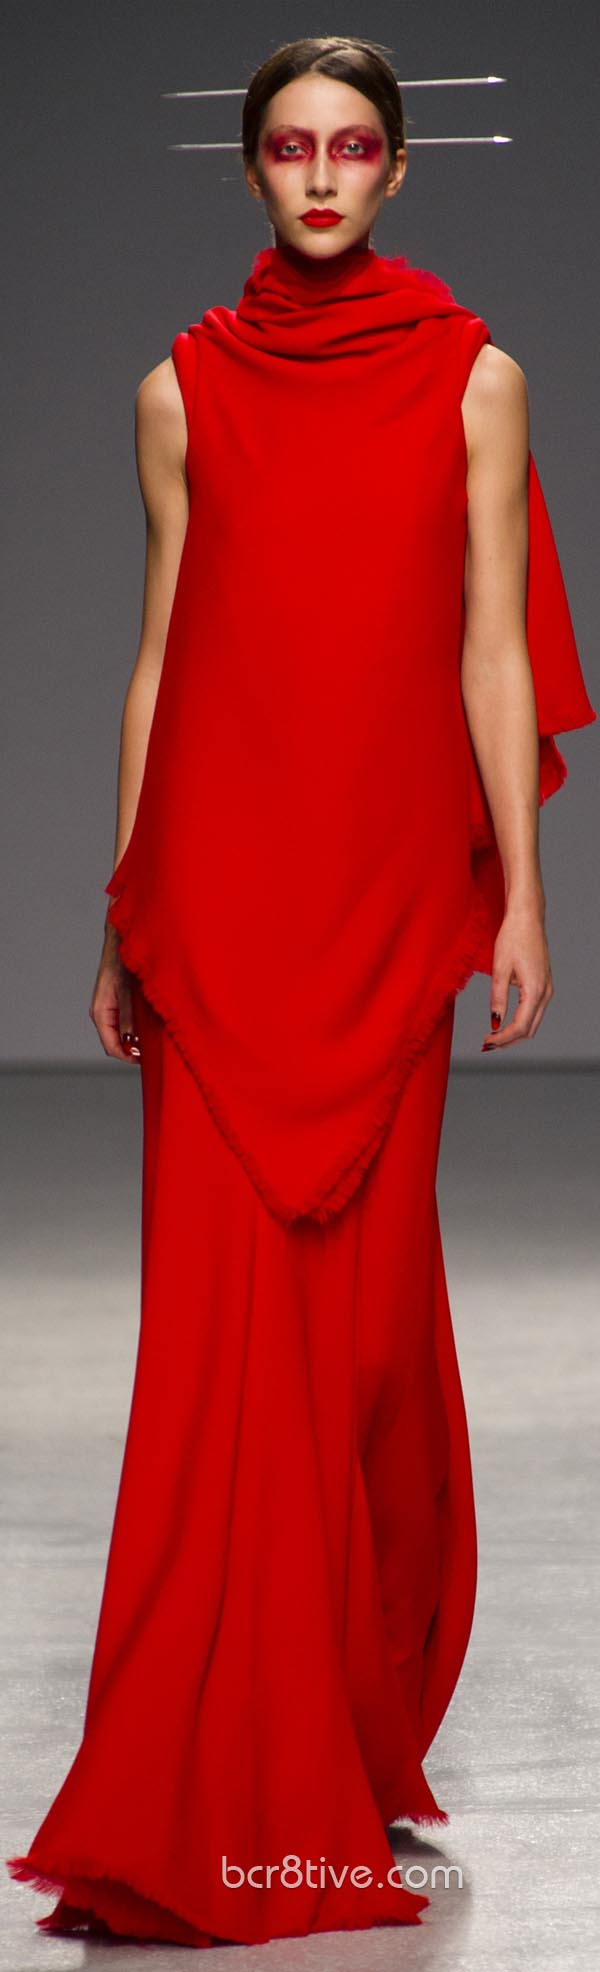 Gareth Pugh Spring Summer 2013 Ready To Wear Collection